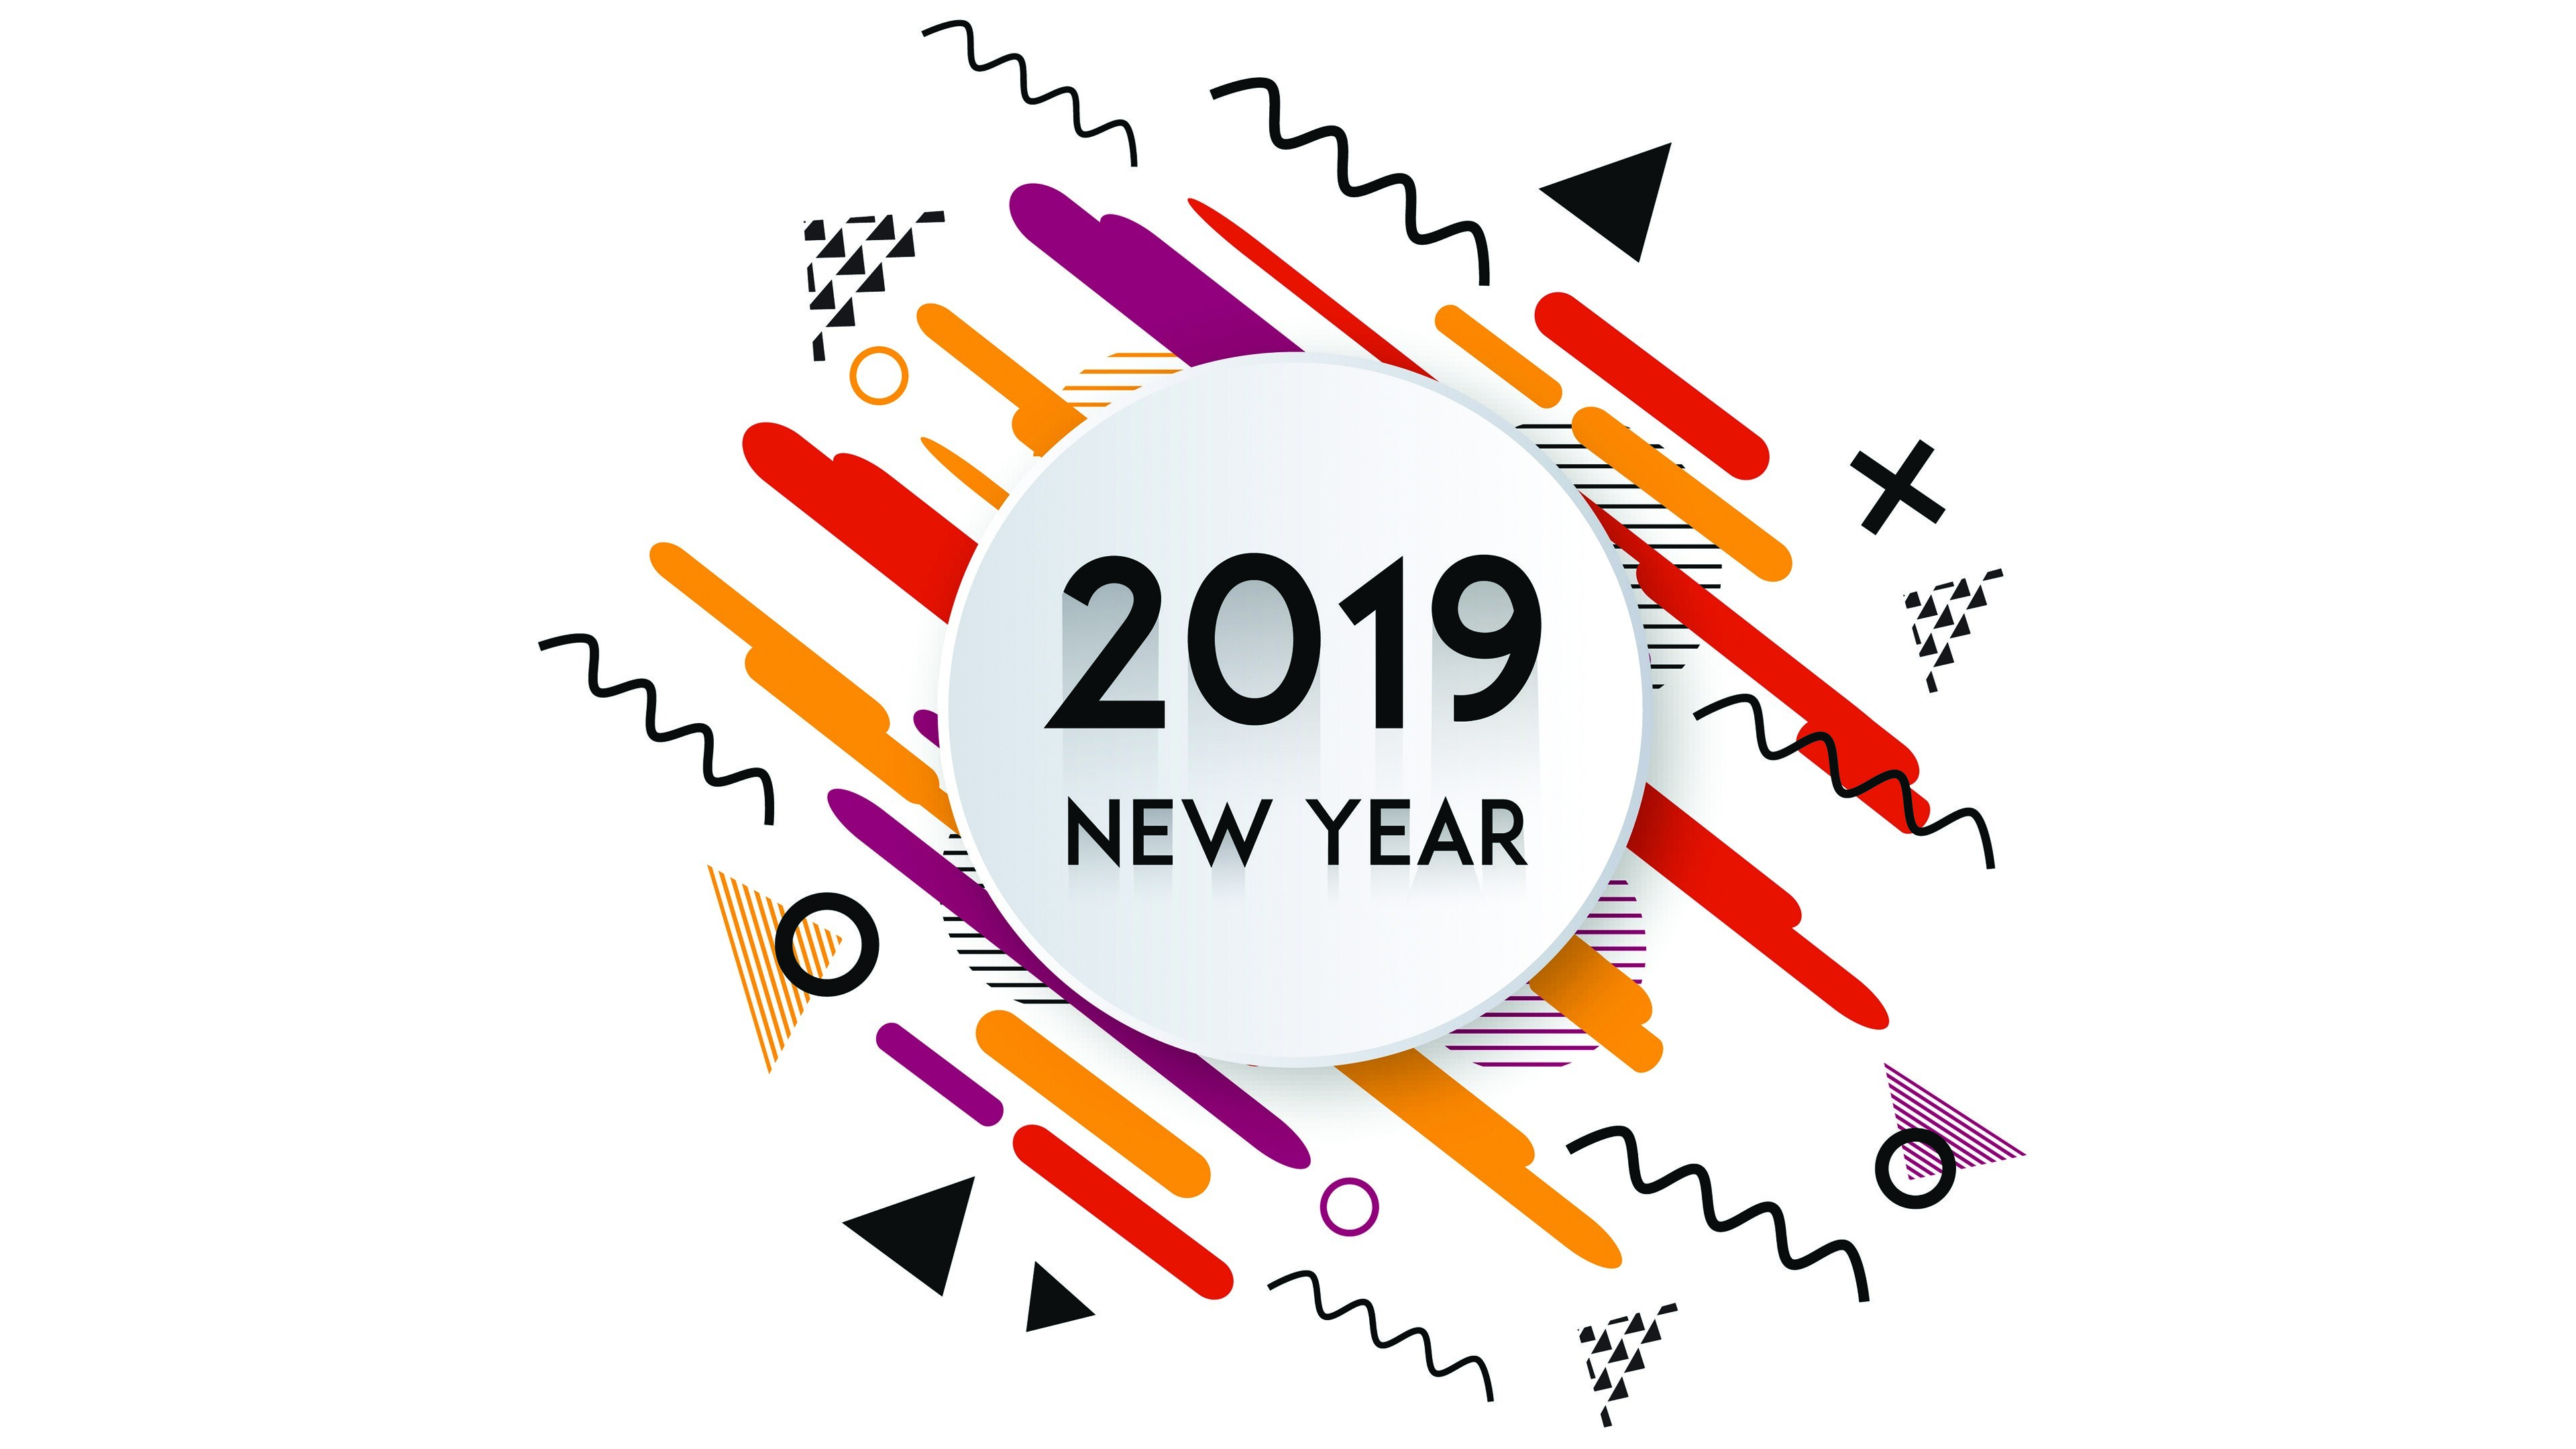 2019 New Year 4K Wallpapers | HD Wallpapers